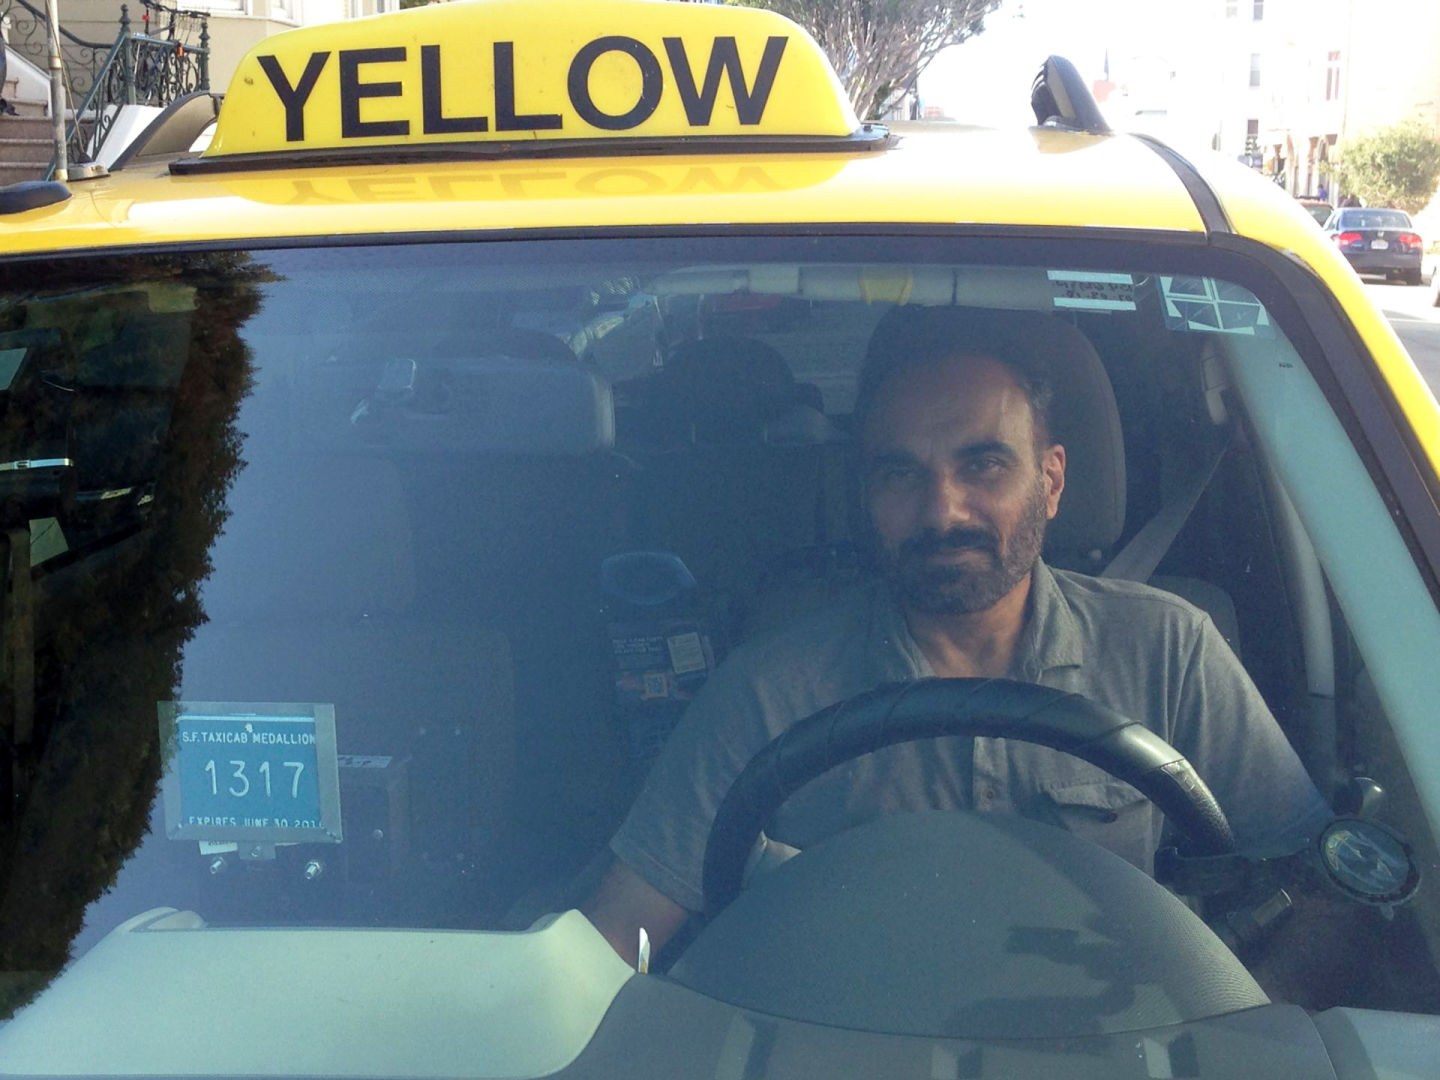 For San Francisco Cab Drivers, Once-Treasured Medallions Now a Burden